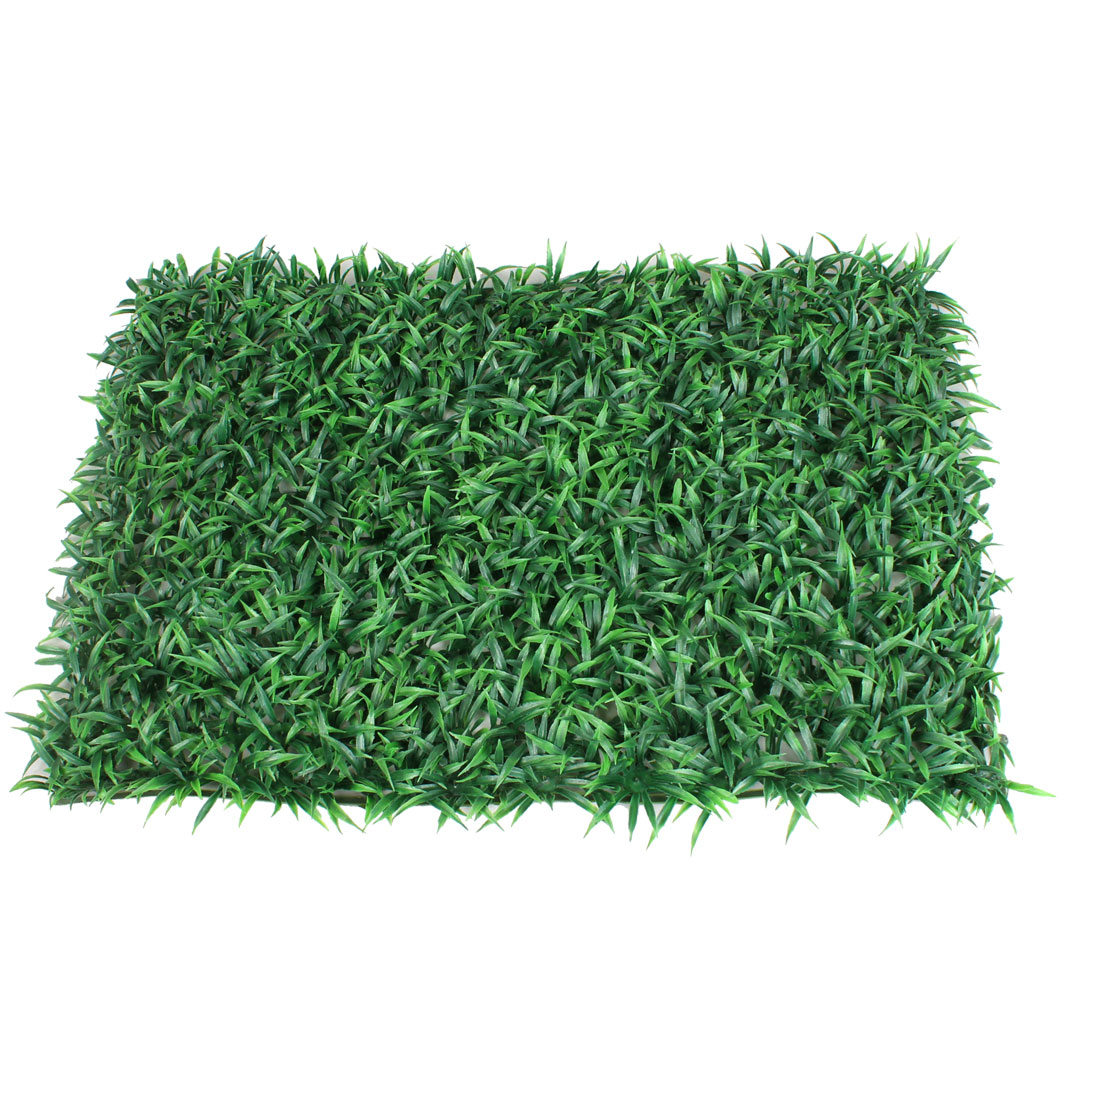 "Artificial Green Plastic Grass Lawn Aquarium Fish Tank Decor 24"" x 16"""